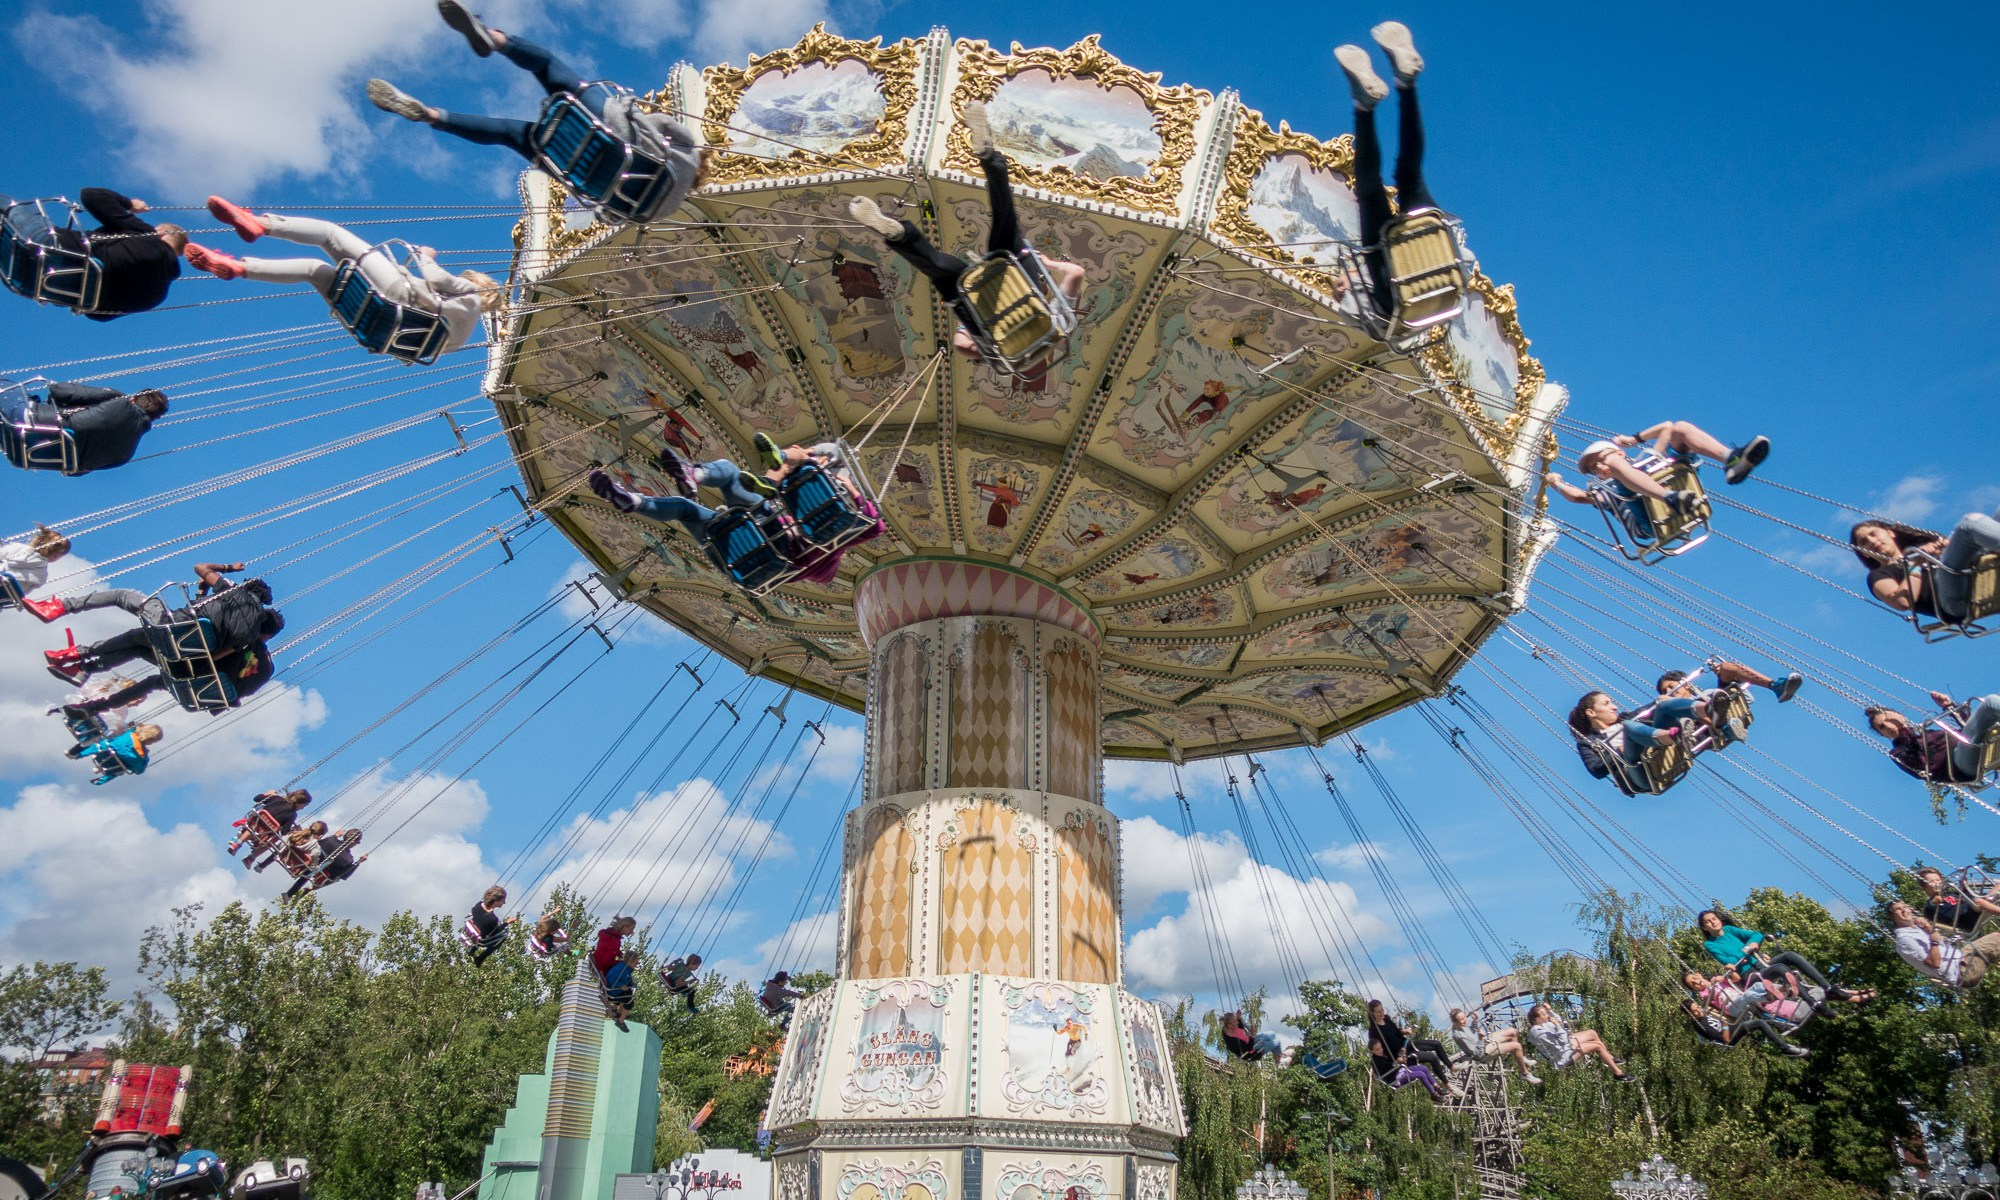 Swing ride at Liseberg Amusement Park